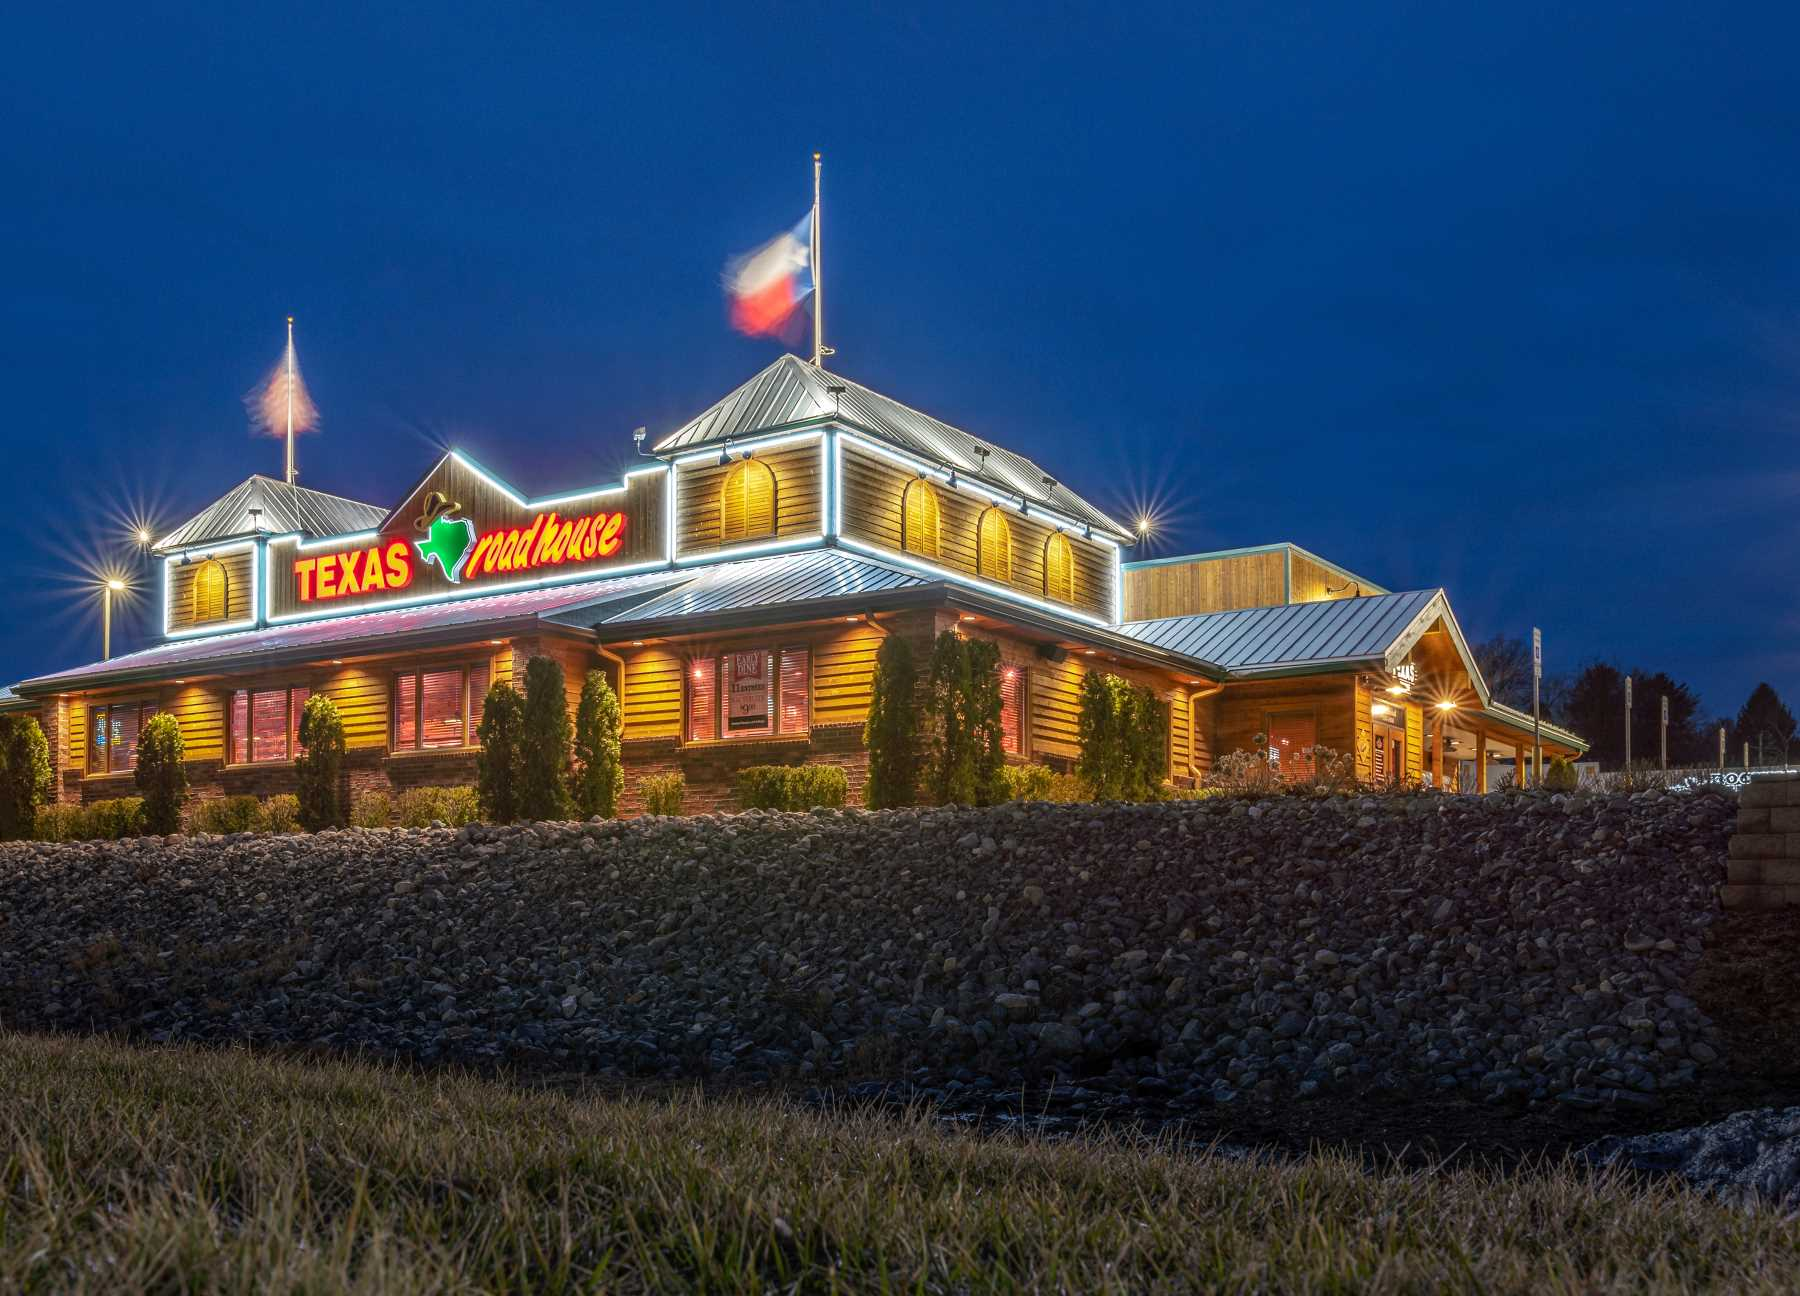 Texas Roadhouse plans to franchise its fast-casual concept Jaggers